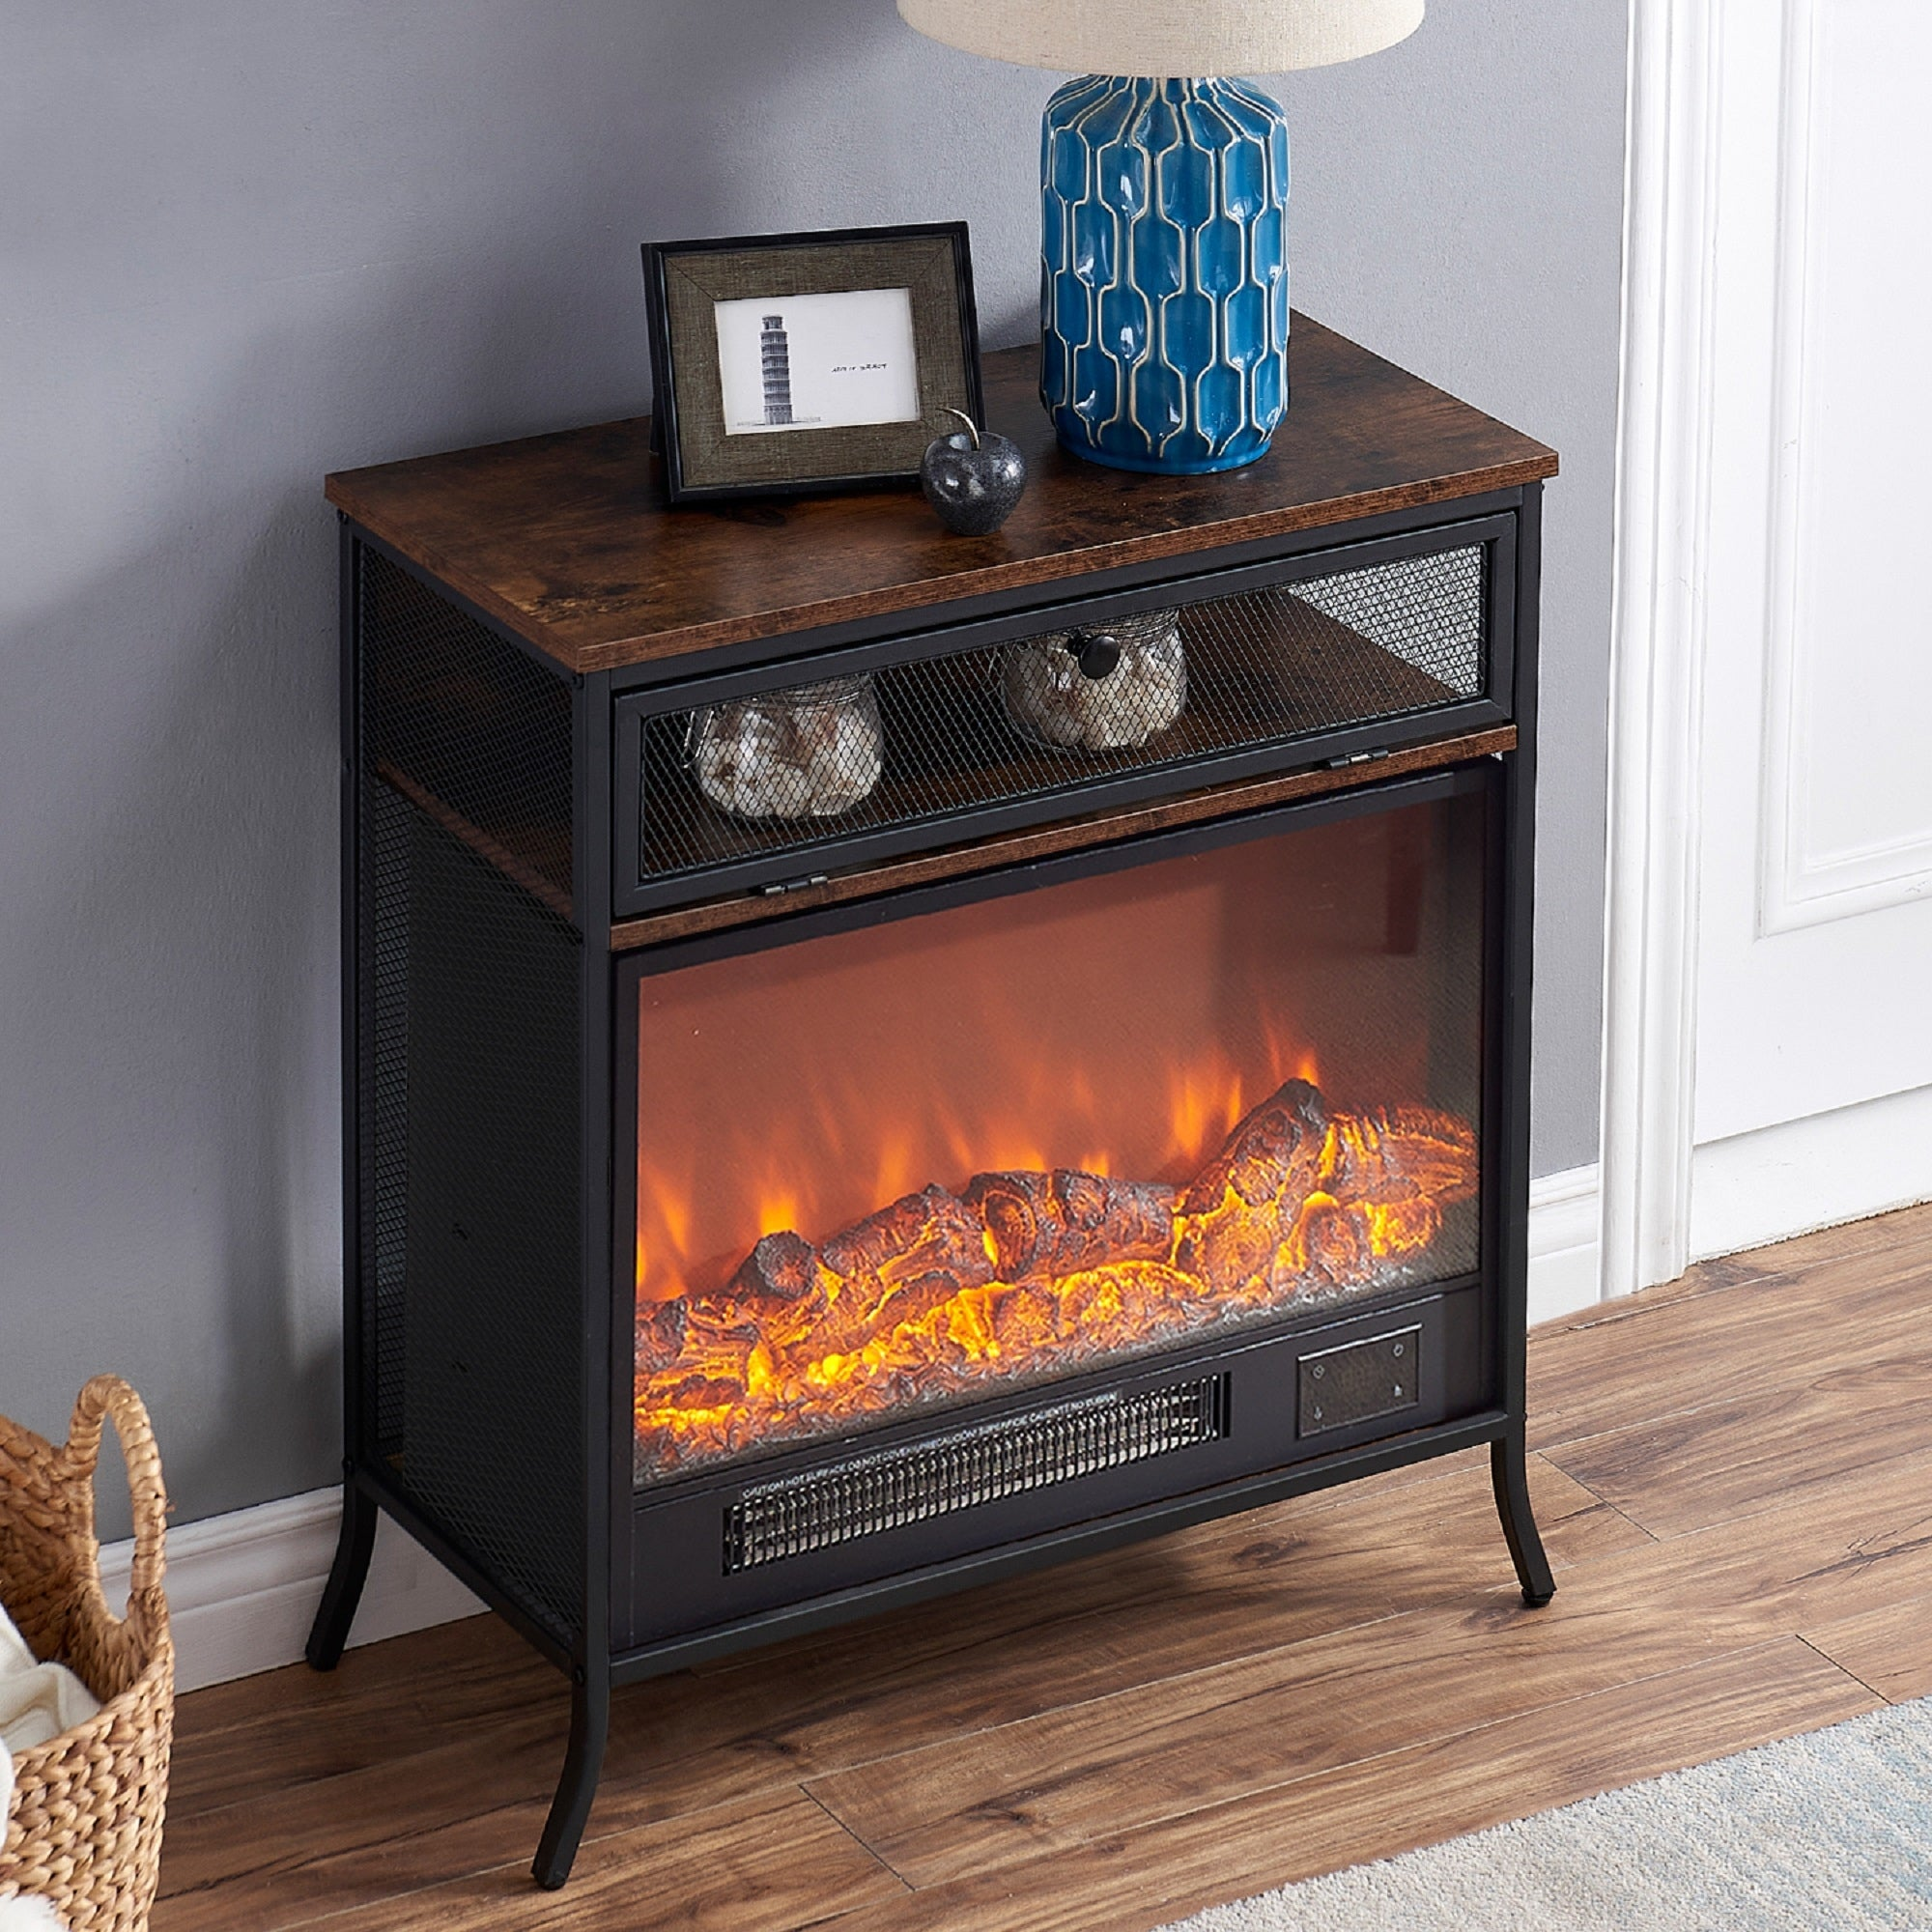 Vecelo Freestanding Fireplace Heater With Mantel Wood 36 12 30 Overstock 32313525